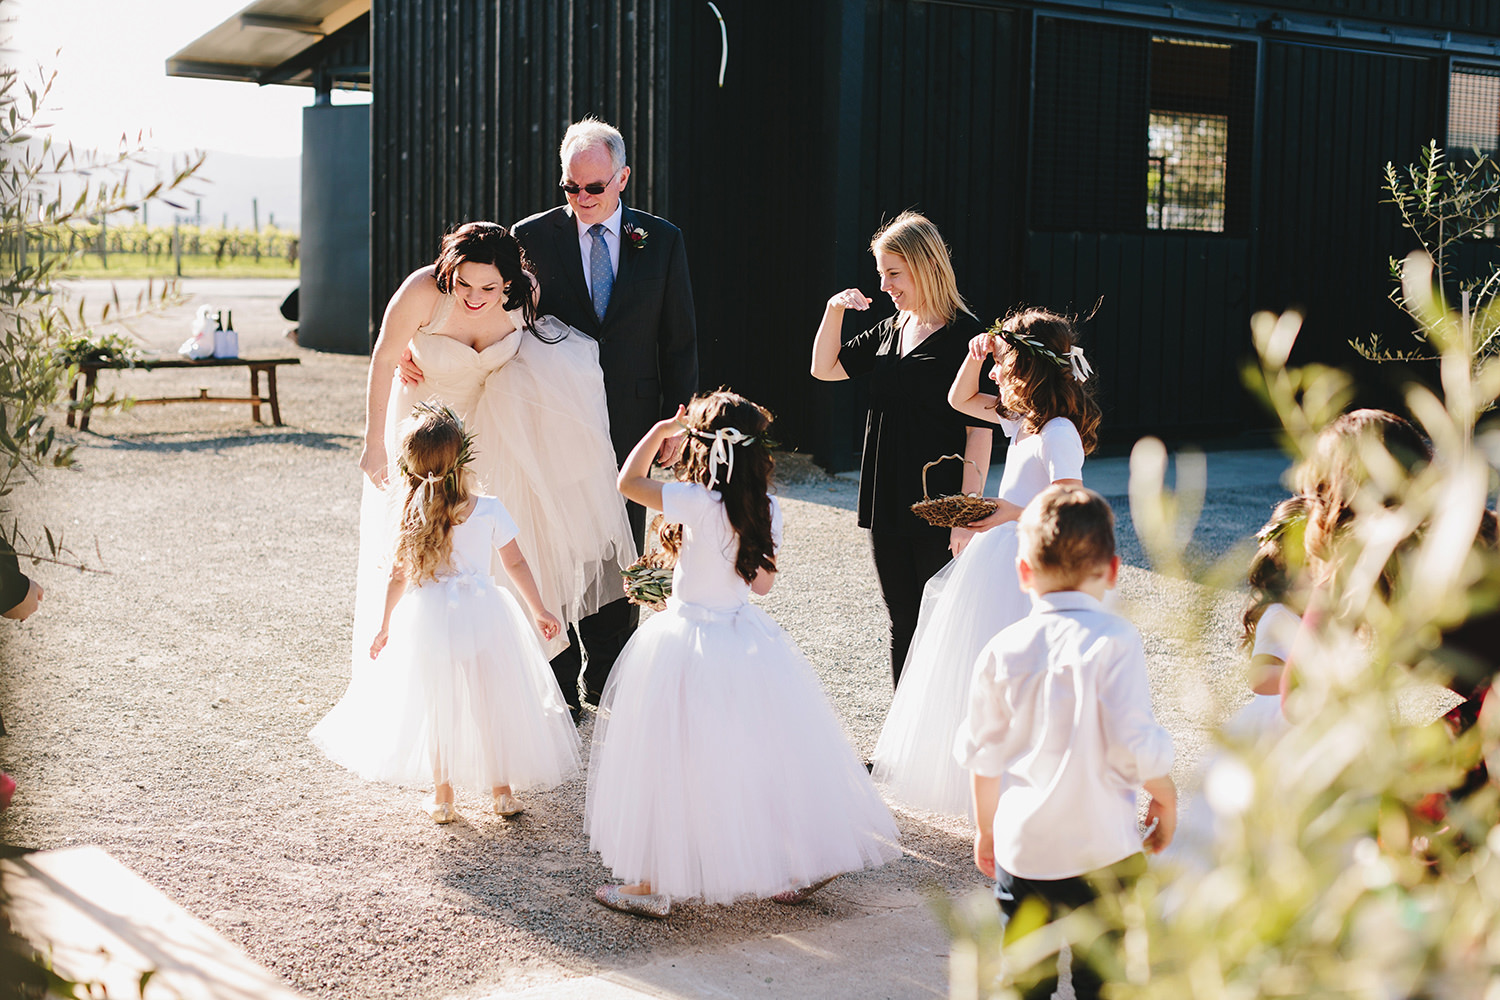 Melbourne_Winery_Wedding_Chris_Merrily077.JPG